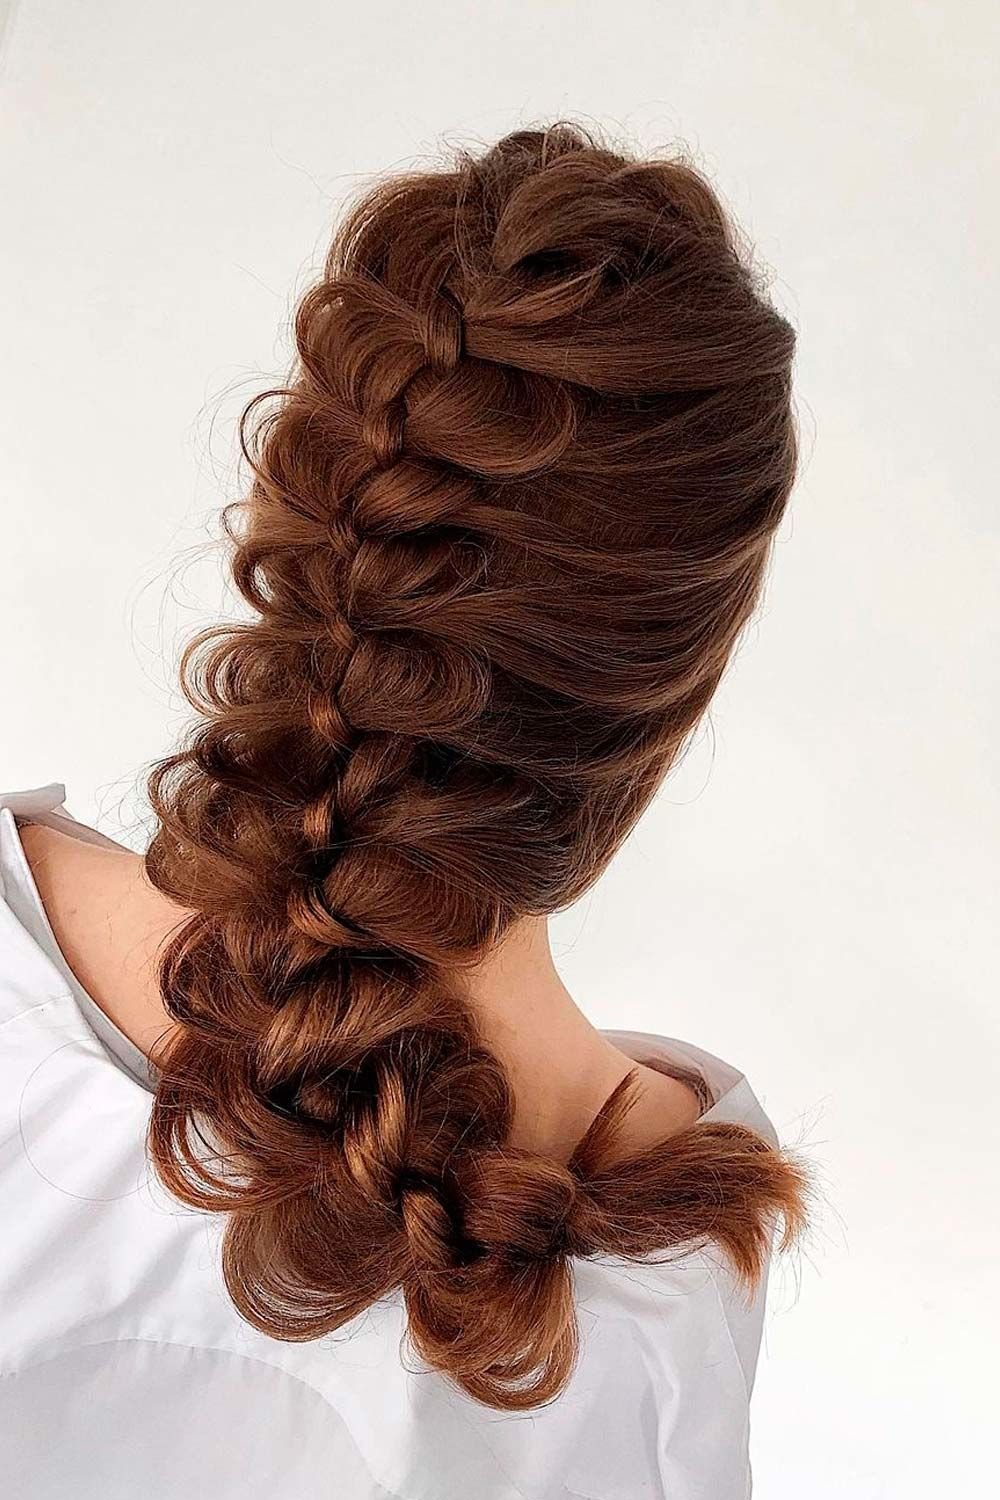 Hairstyles For Long Hair With Messy Braid